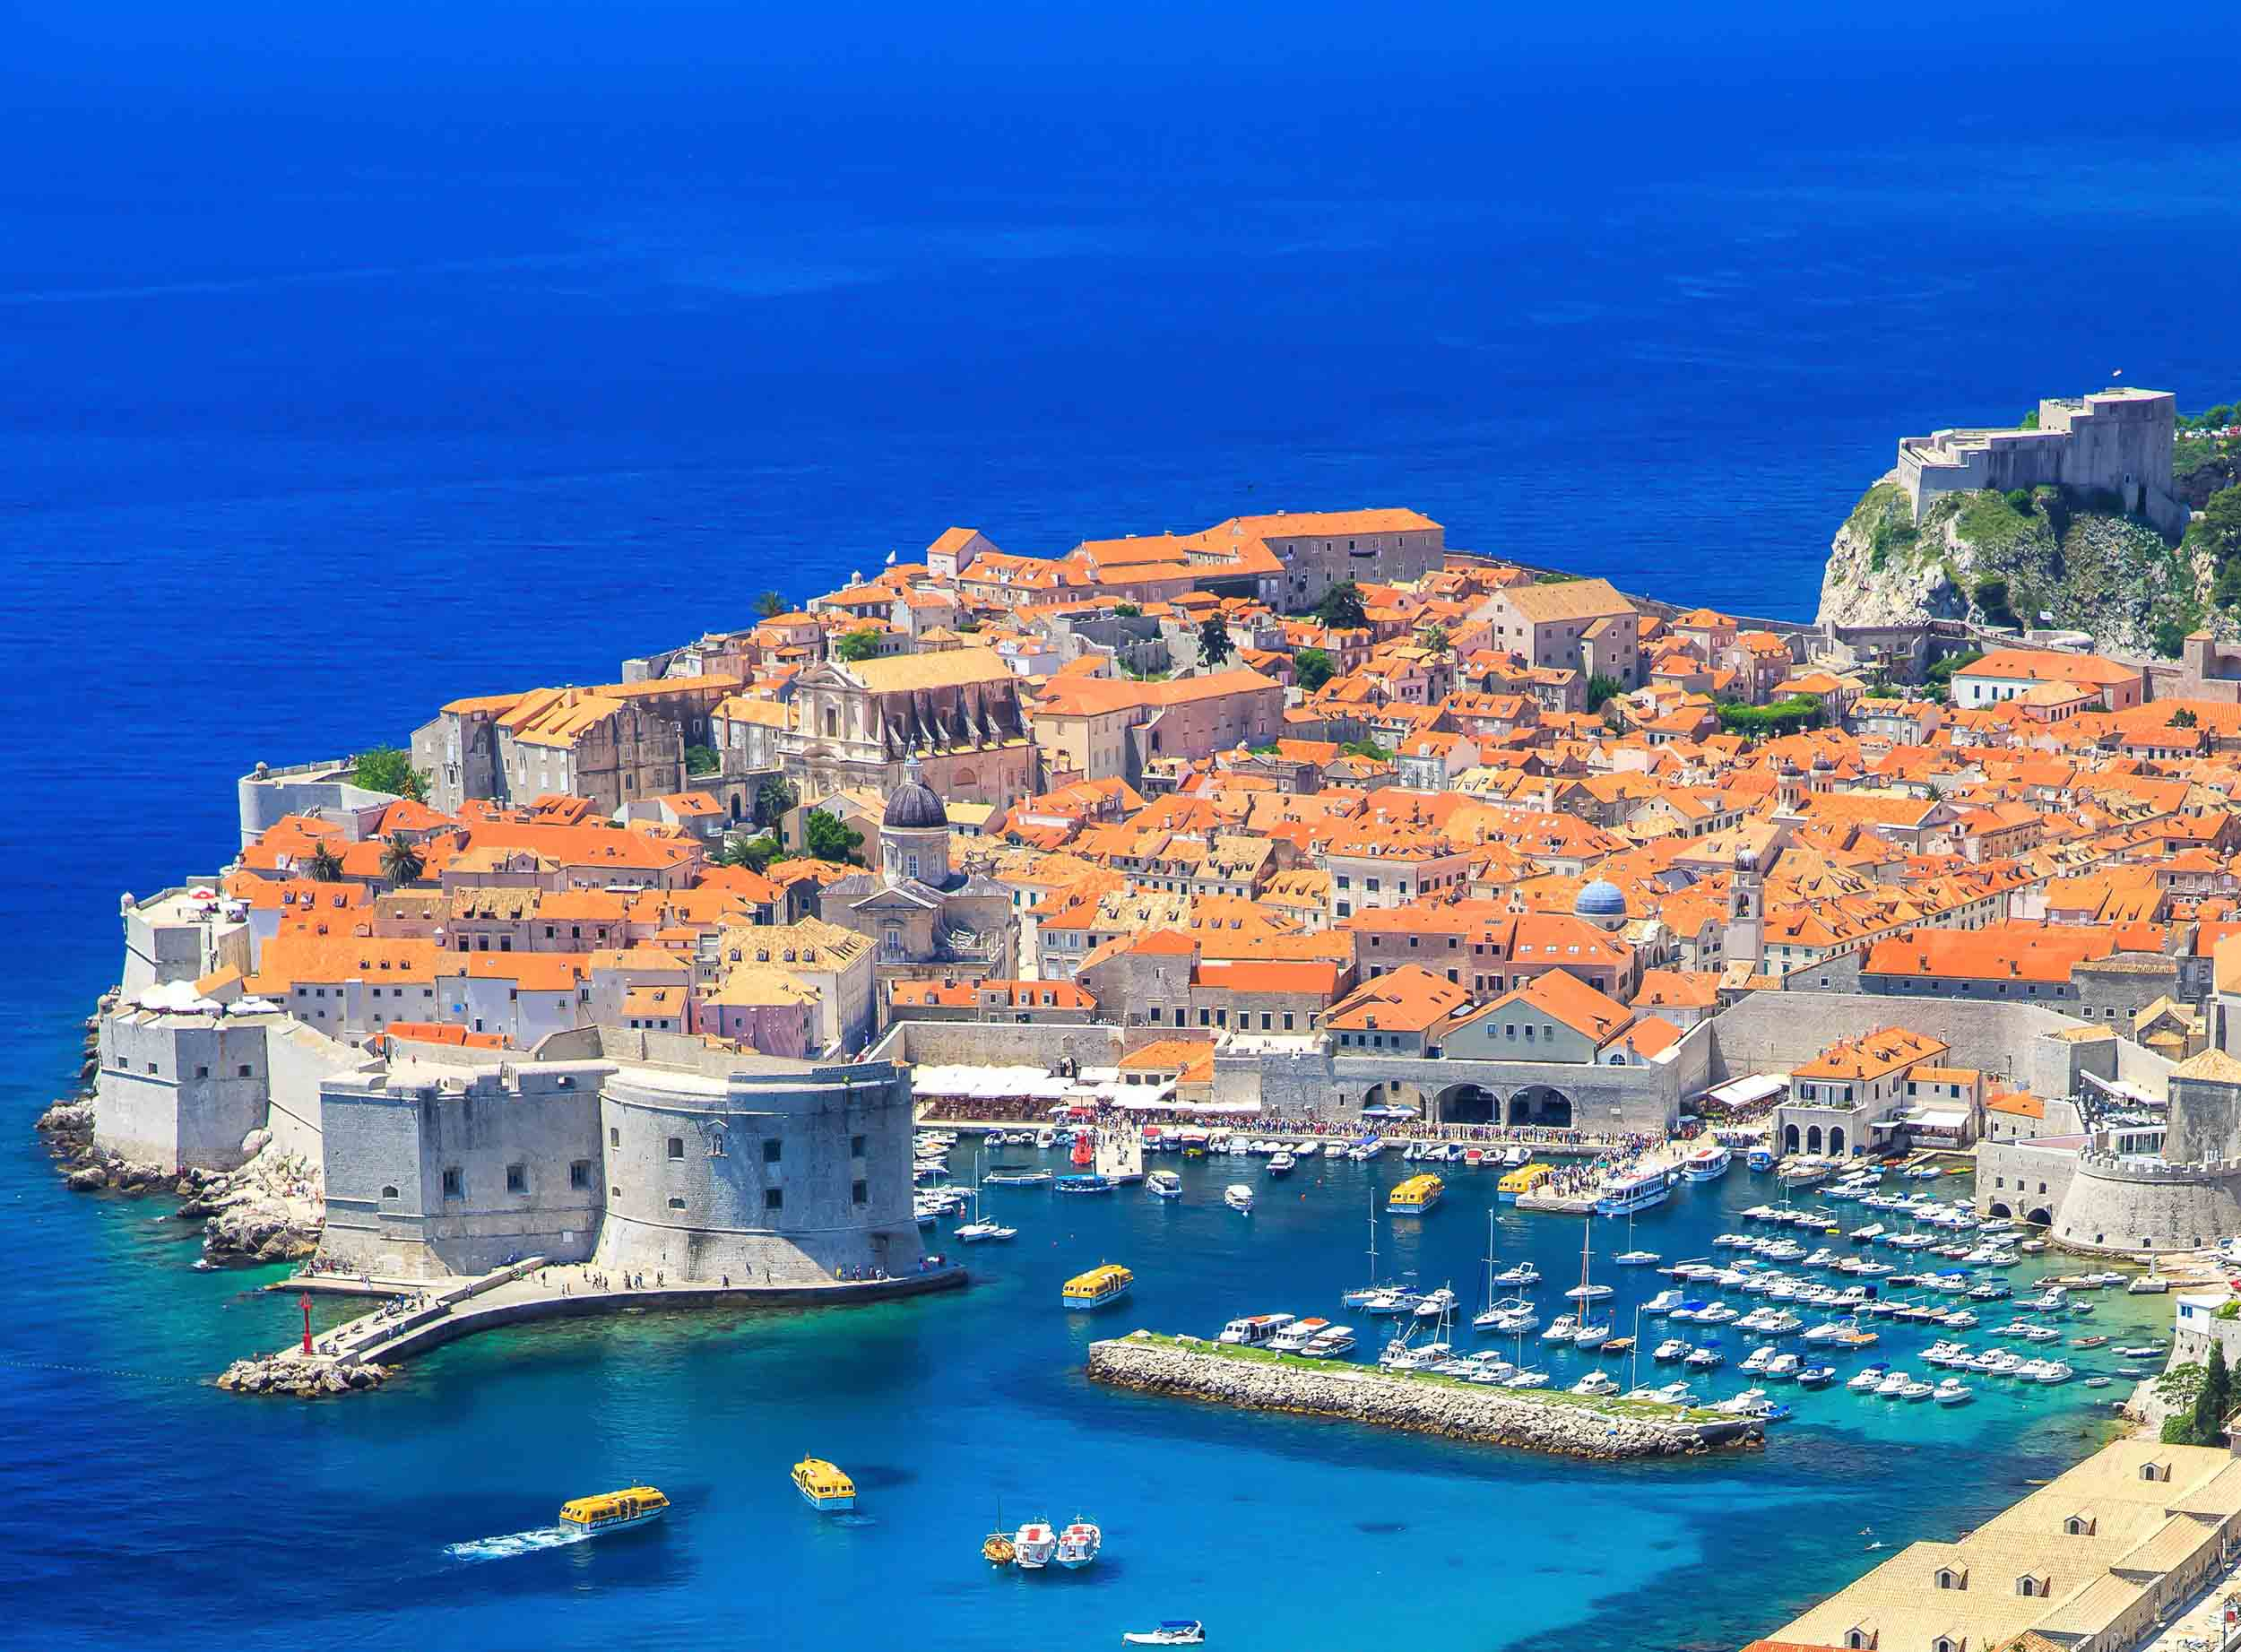 Croatia Sailing Tours - Europe Sailing Trip - Expat Explore